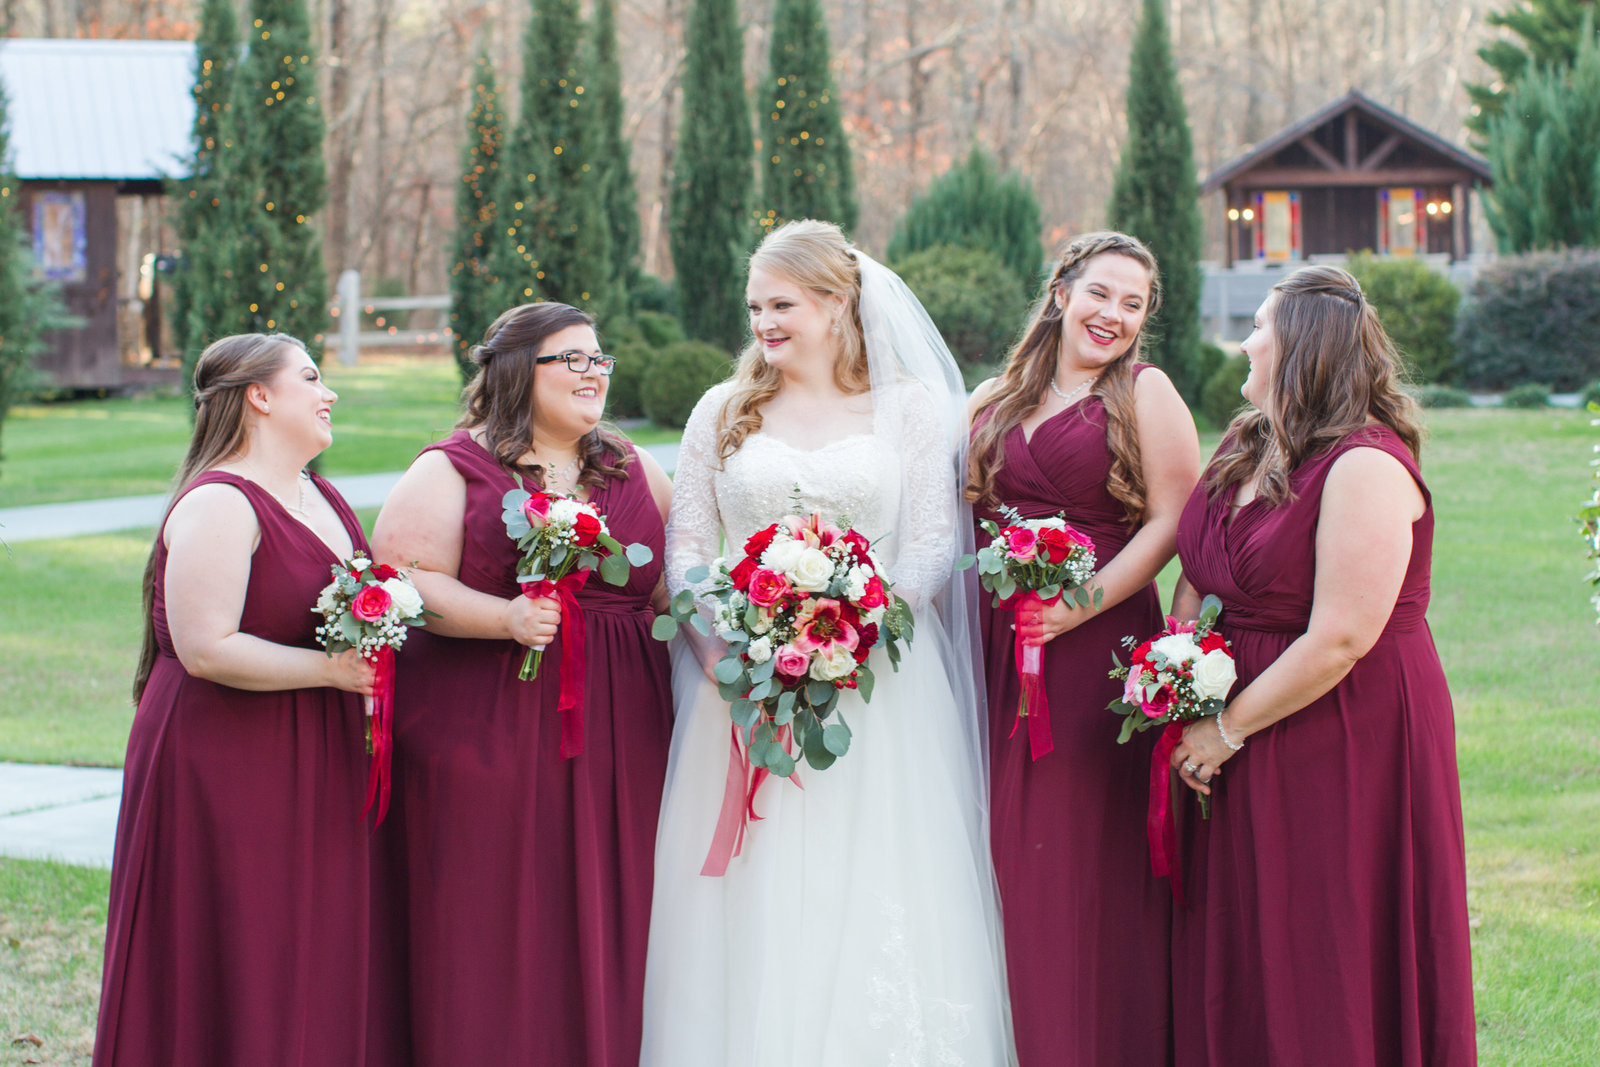 Proctor Farm Rome Georgia Wedding Photographer